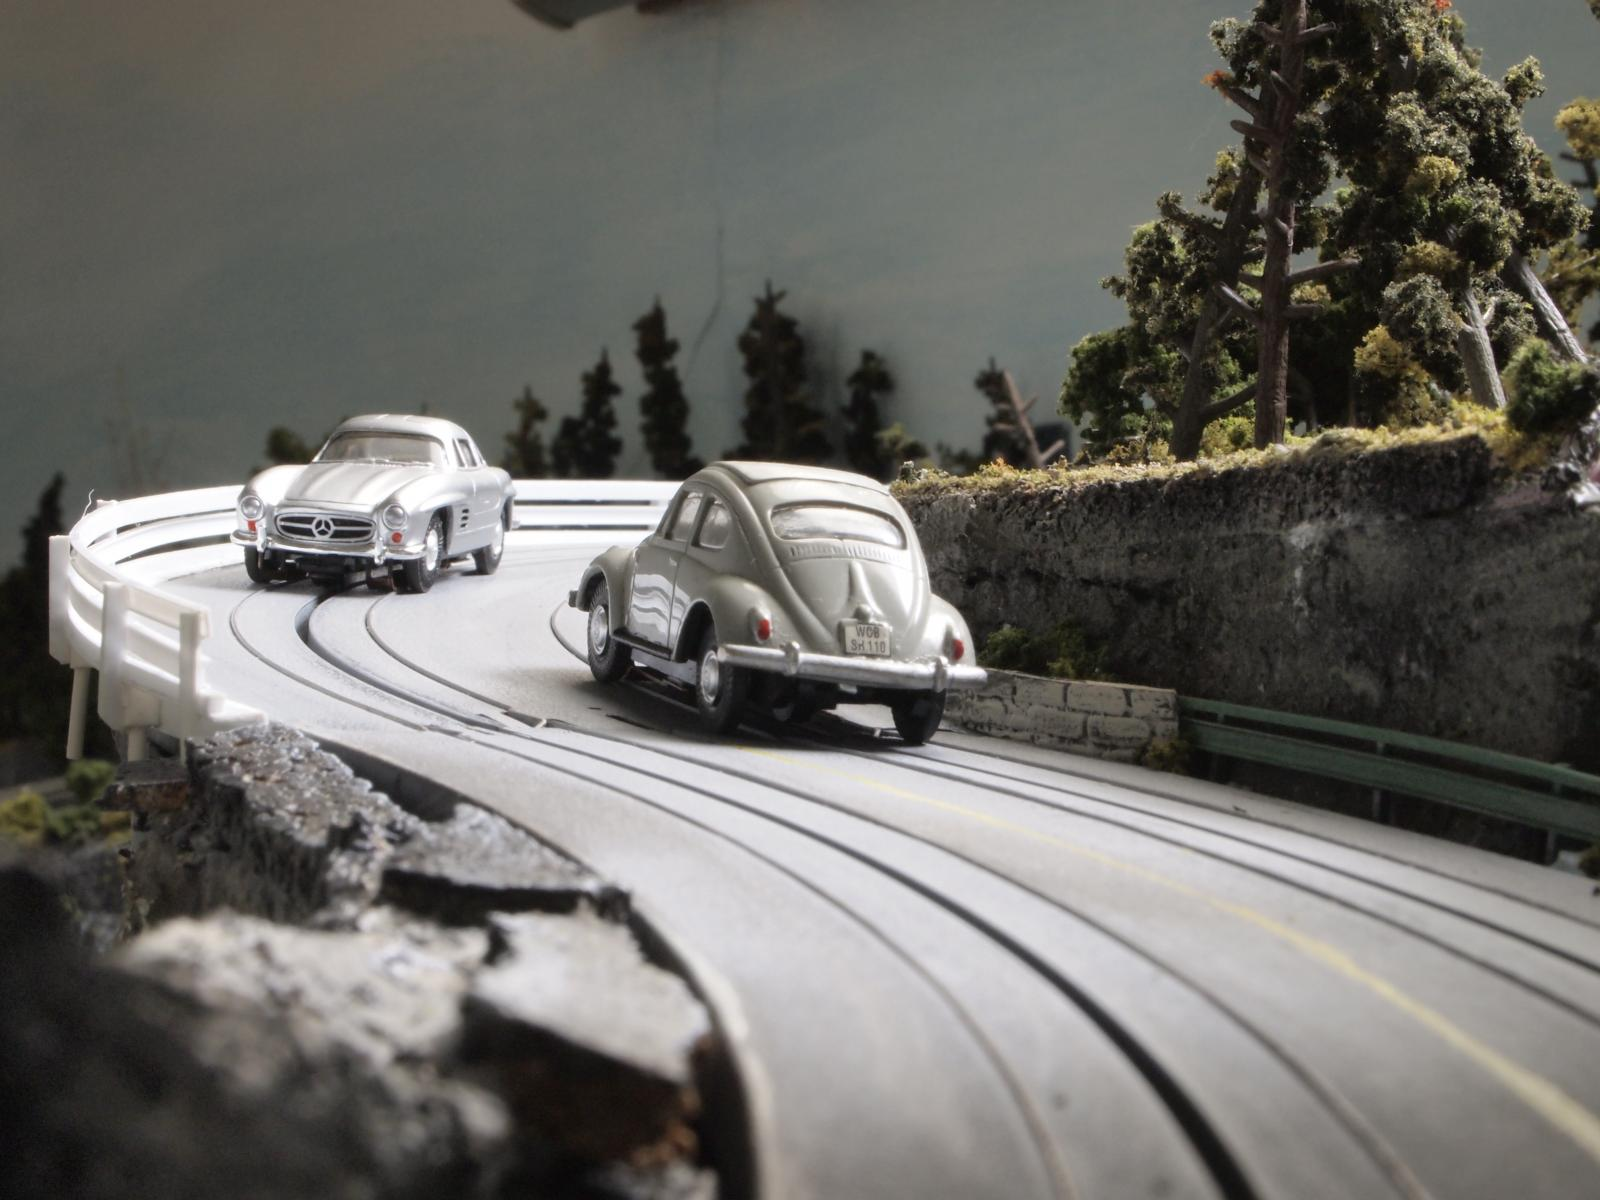 VW and Porsche HO scale slot cars